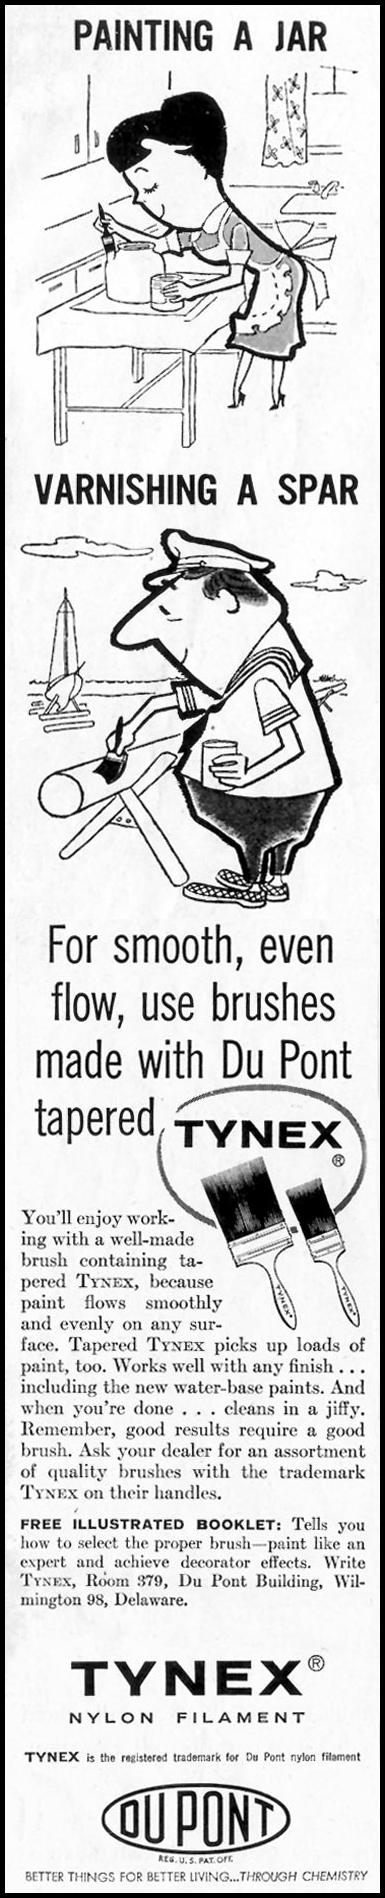 DU PONT TYNEX NYLON FILAMENT BRUSHES SATURDAY EVENING POST 08/15/1959 p. 98